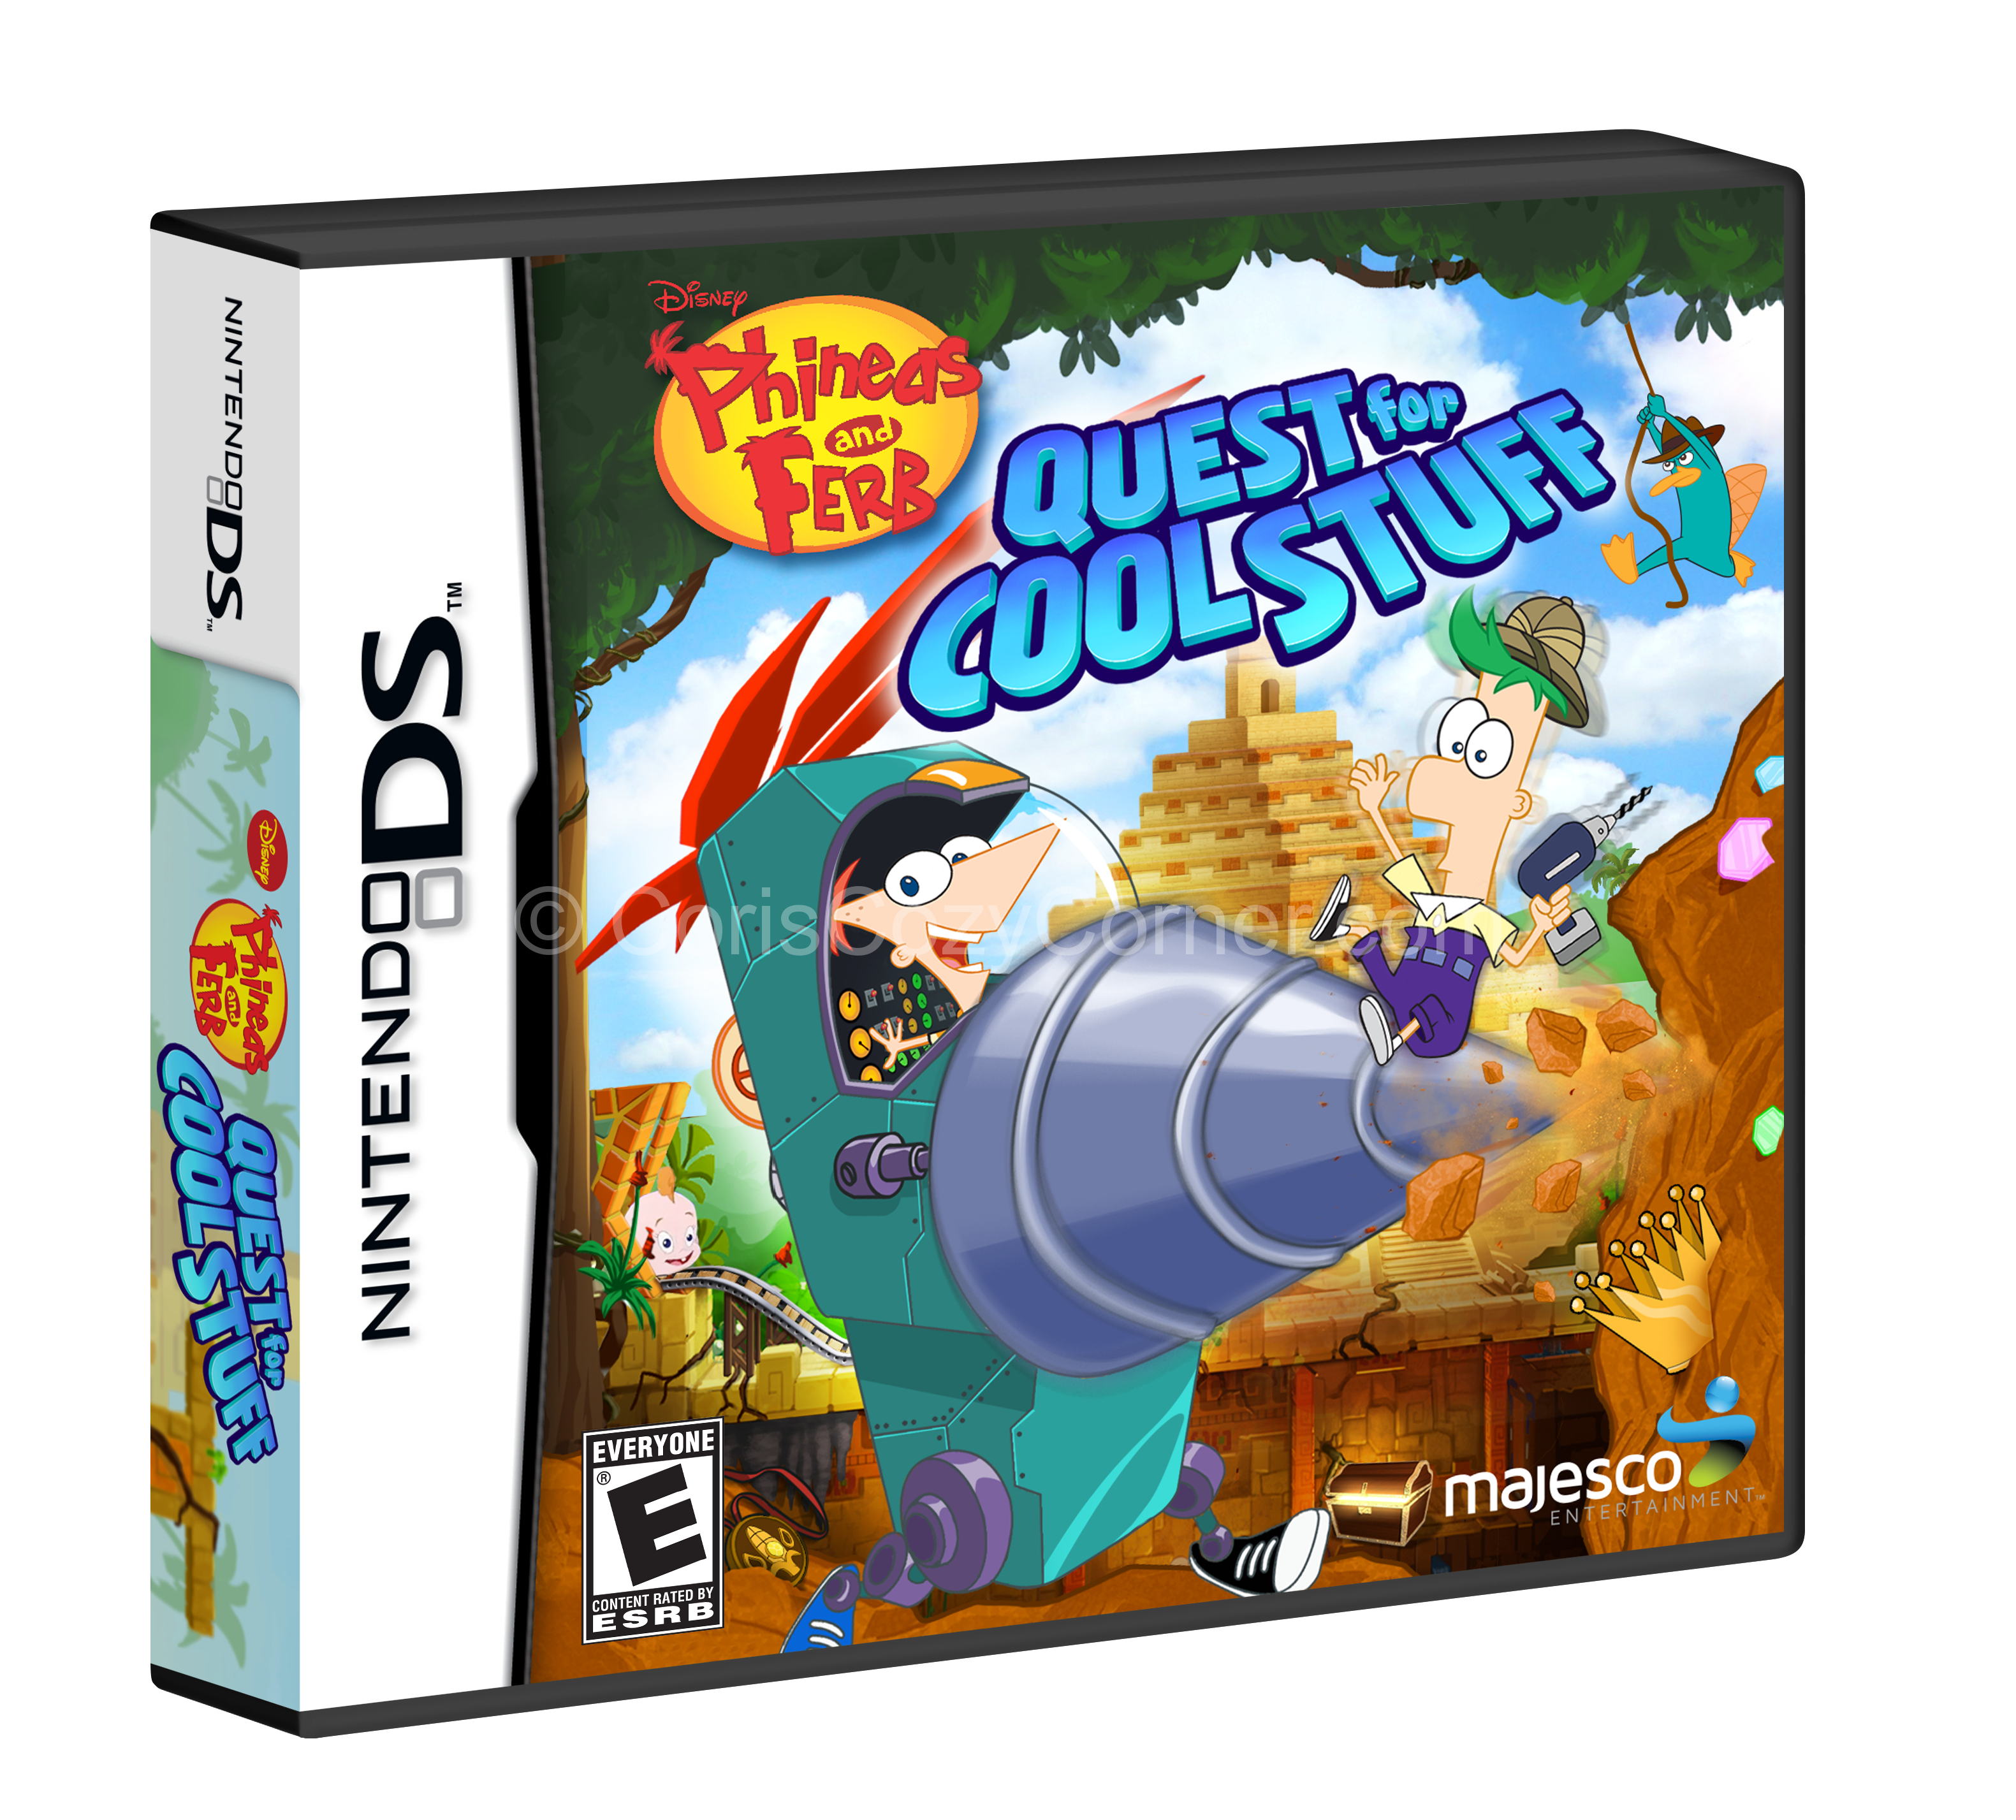 Phineas And Ferb Quest For Cool Stuff Nintendo 3ds Game Product Review Cori S Cozy Corner